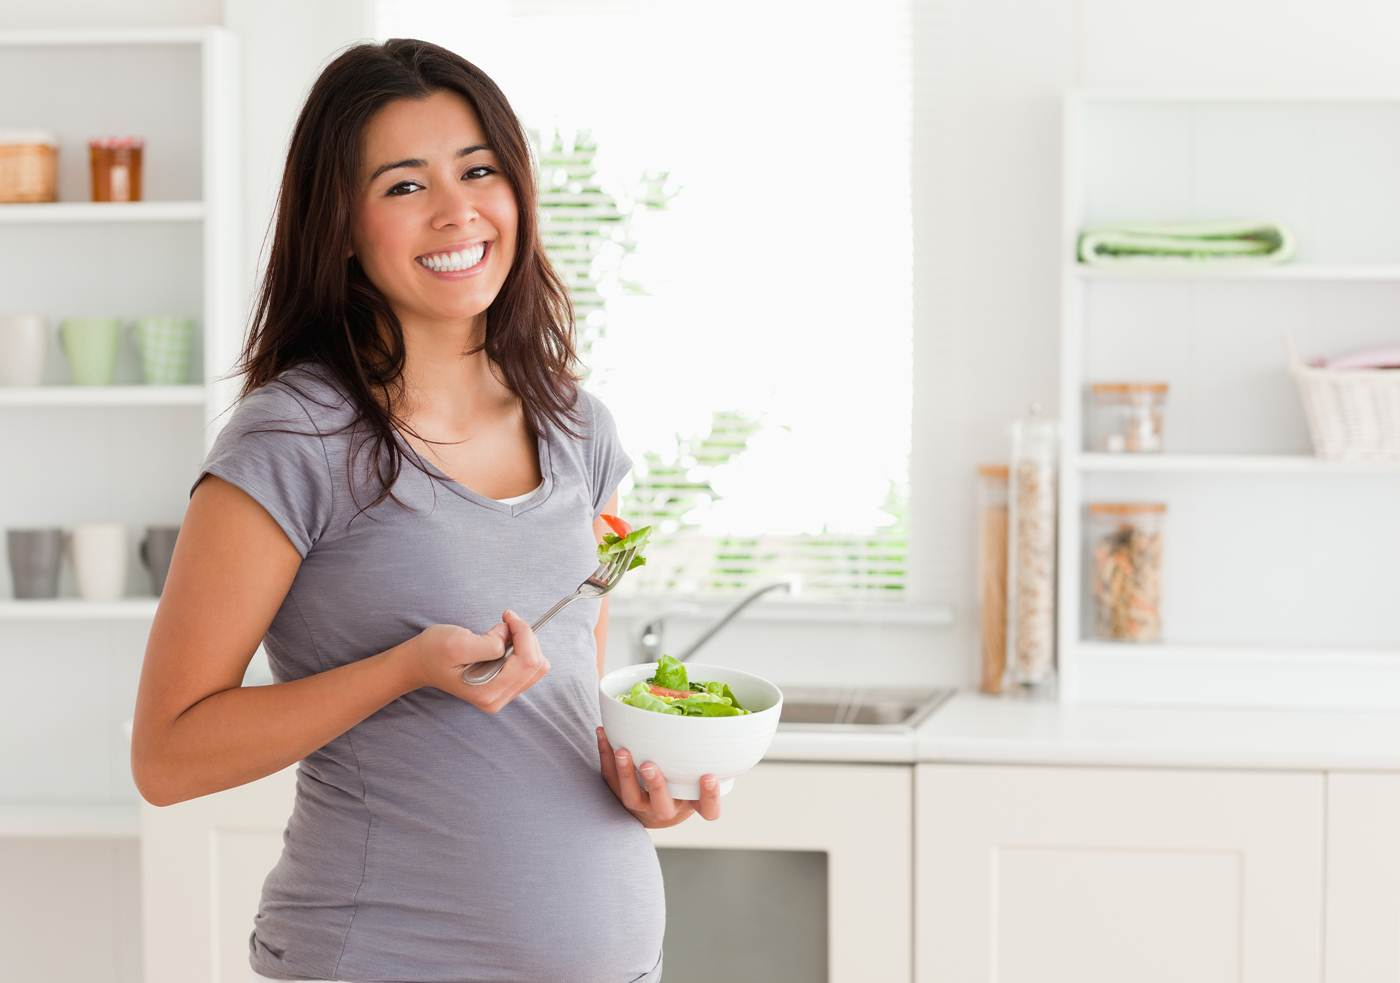 happy pregnant woman eating a salad